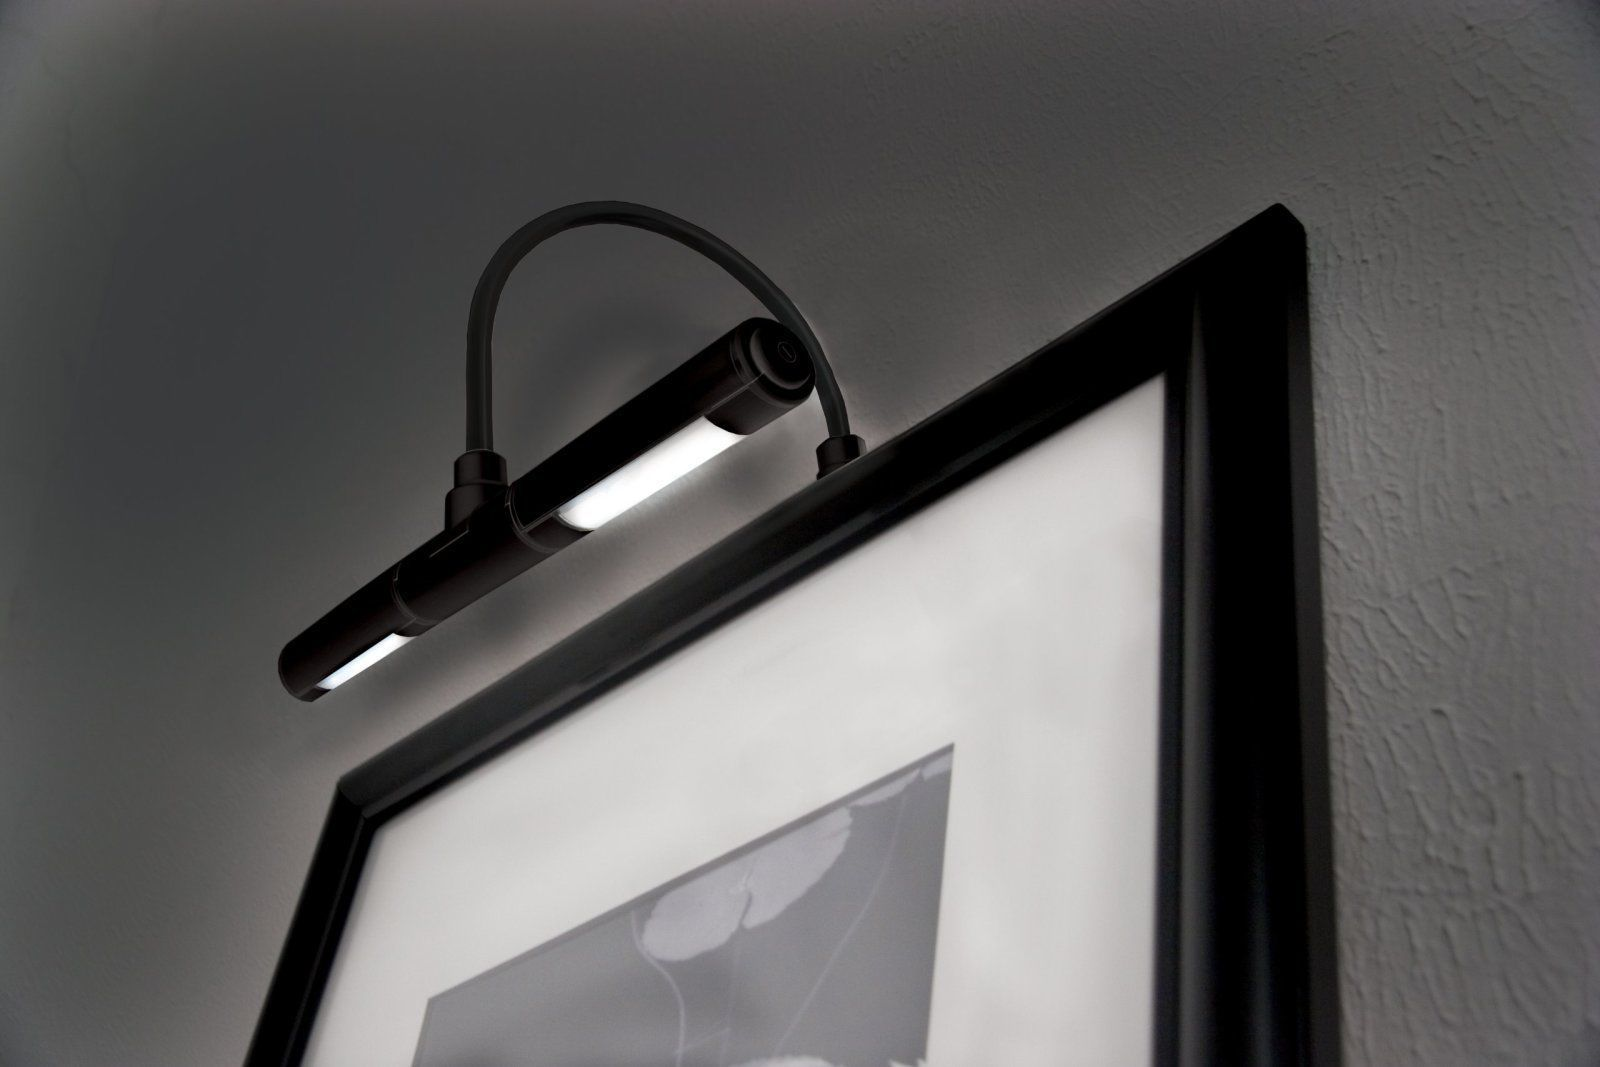 cordless art lighting fixtures. Cordless LED Picture Light Frame Battery Operated Wireless Art Lighting Black Fixtures